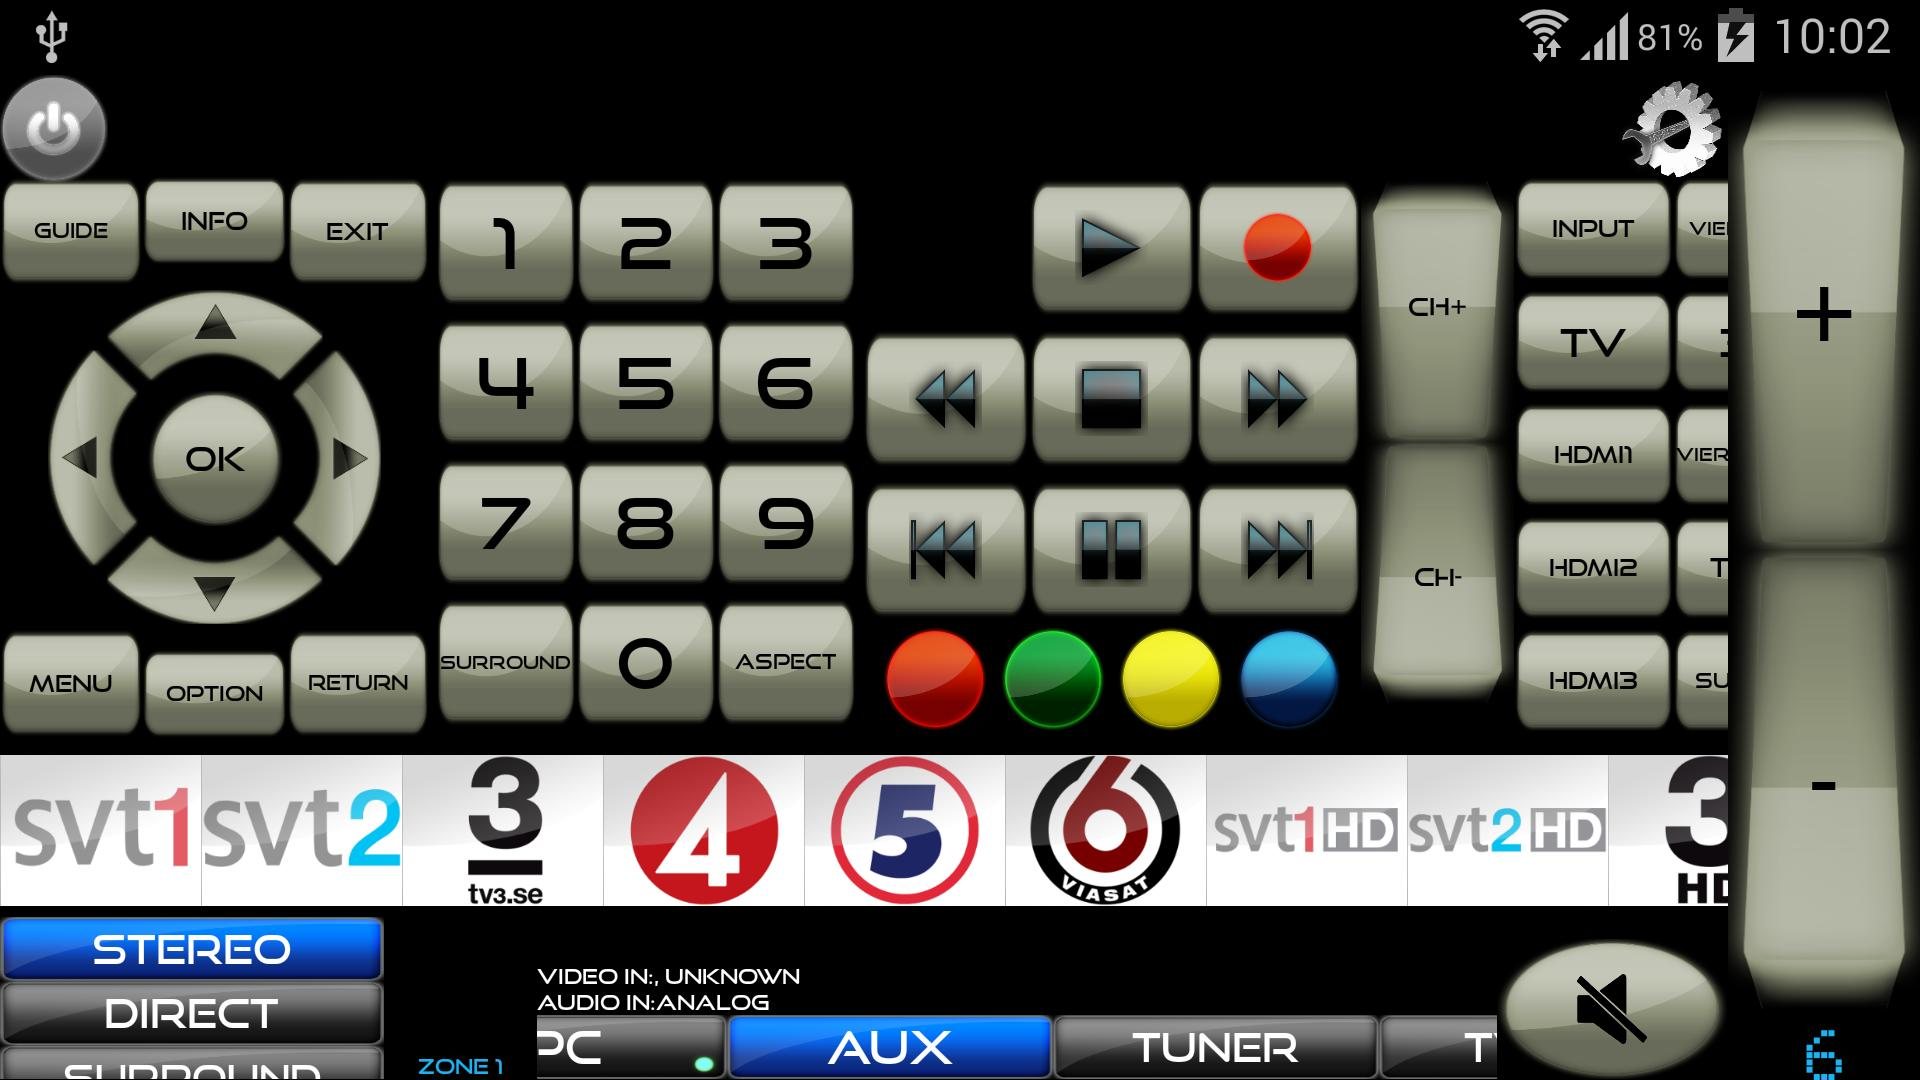 Remote for Panasonic TV+BD+AVR for Android - APK Download